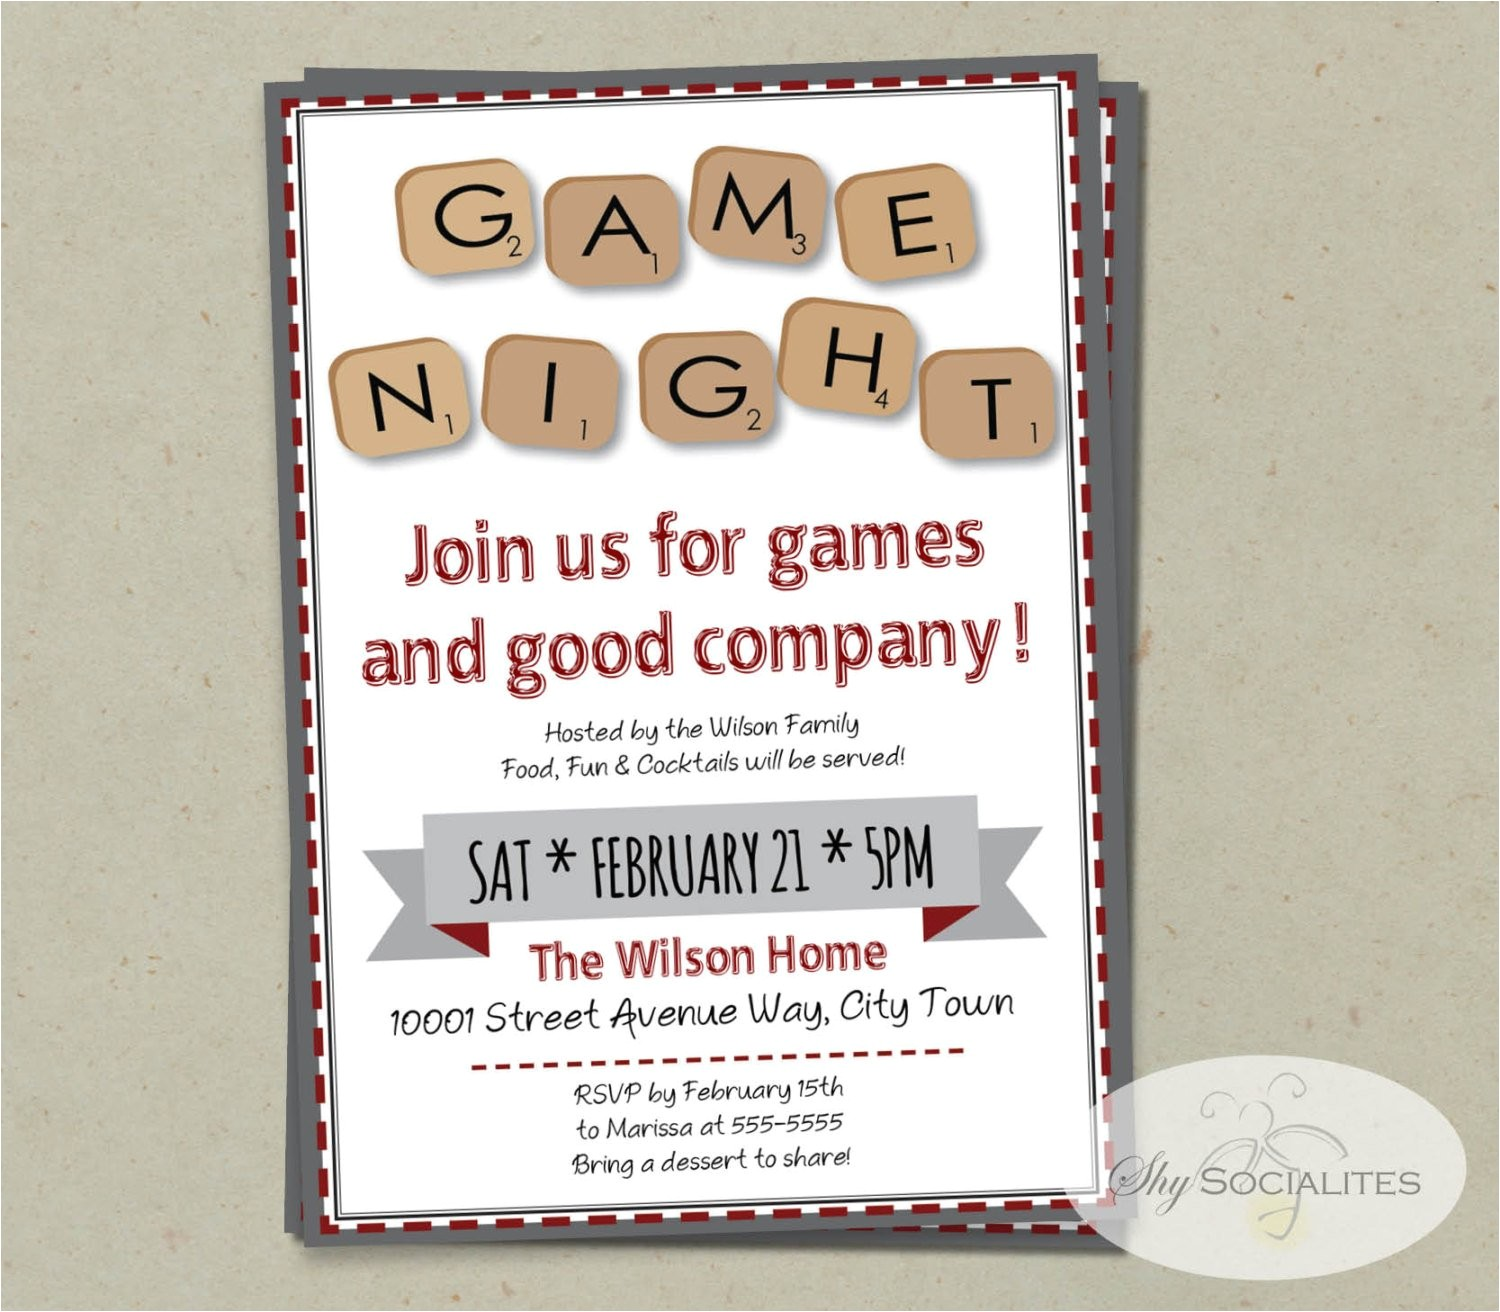 word scramble game night invitation